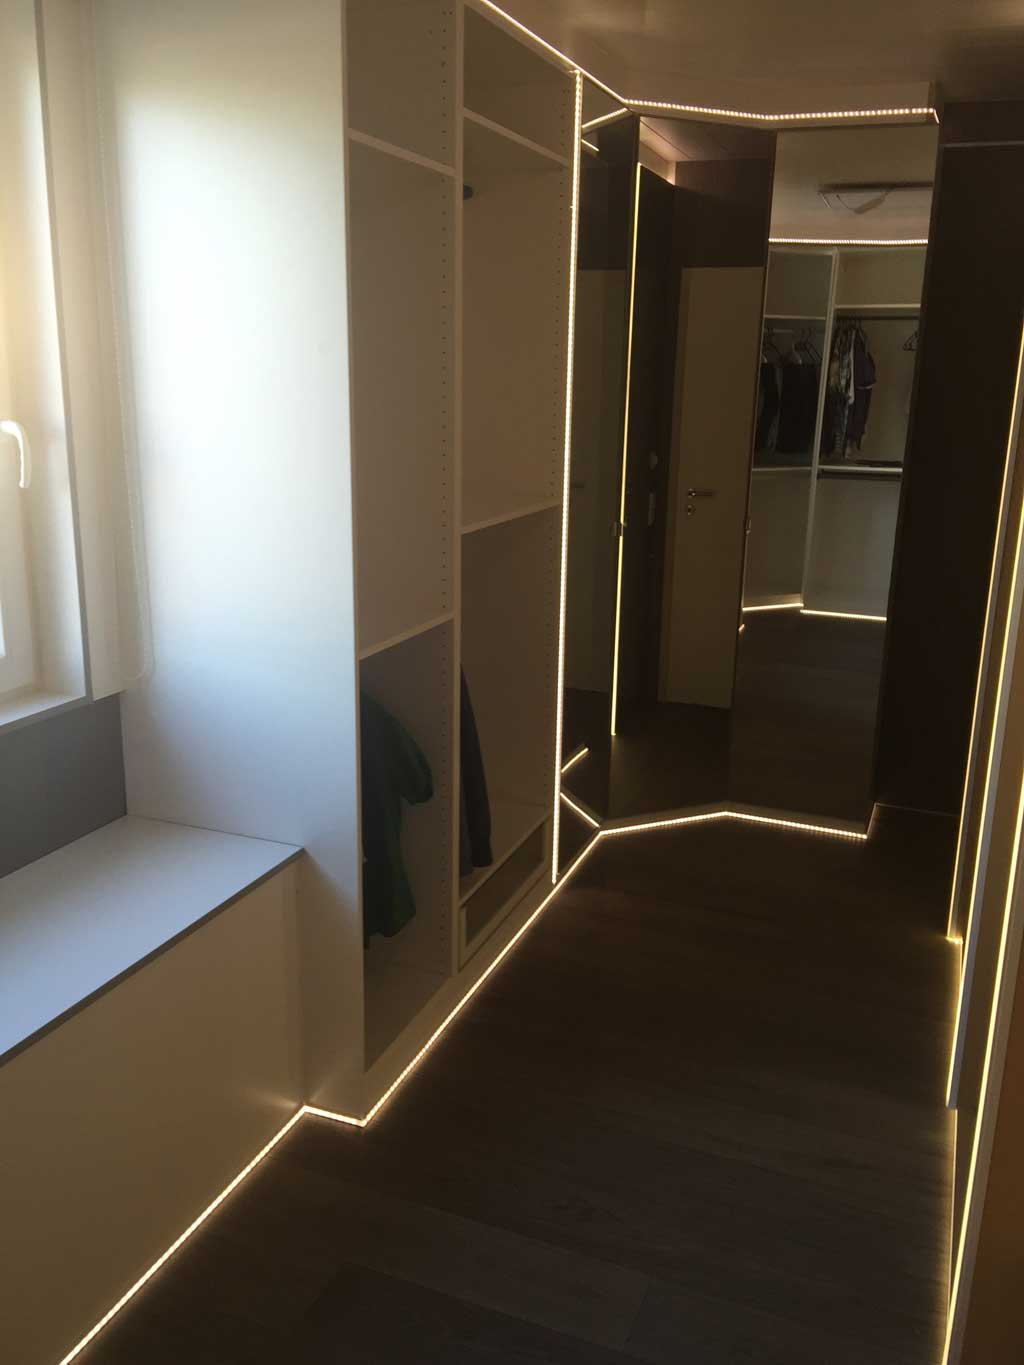 Deckenbeleuchtung Mit Led Strips Led Profil Decke Home Image Ideen